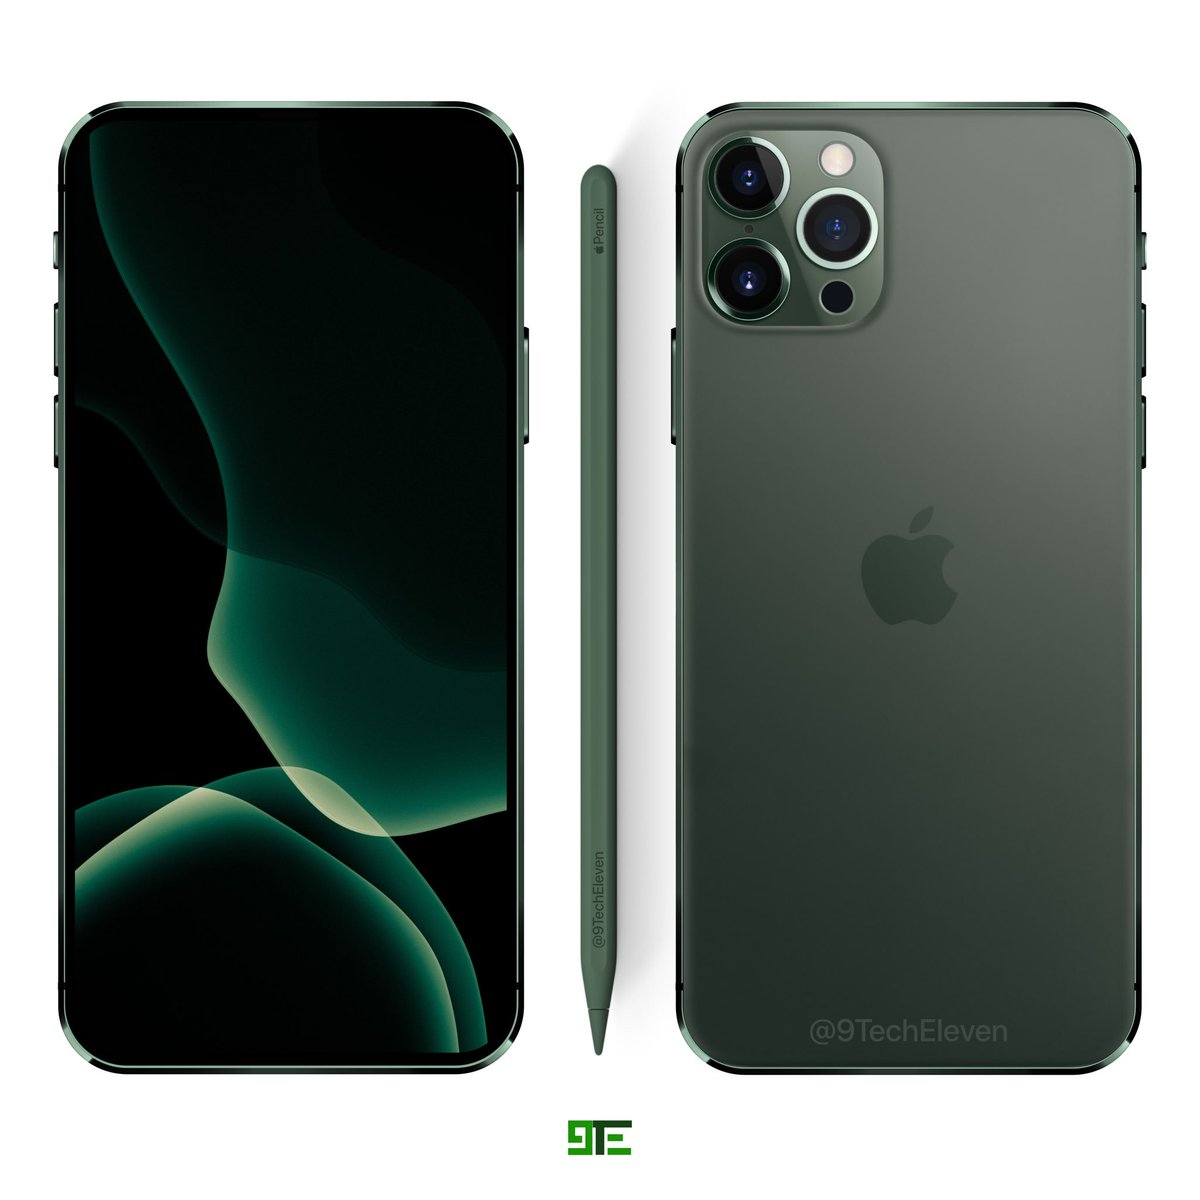 9techeleven On Twitter Revised 6 7 2020 Iphone Pro Concept In Midnight Green Finish And An Iphone 11 Pro Style Camera A Tof Sensor Has Also Been Added Let S See How Many Of